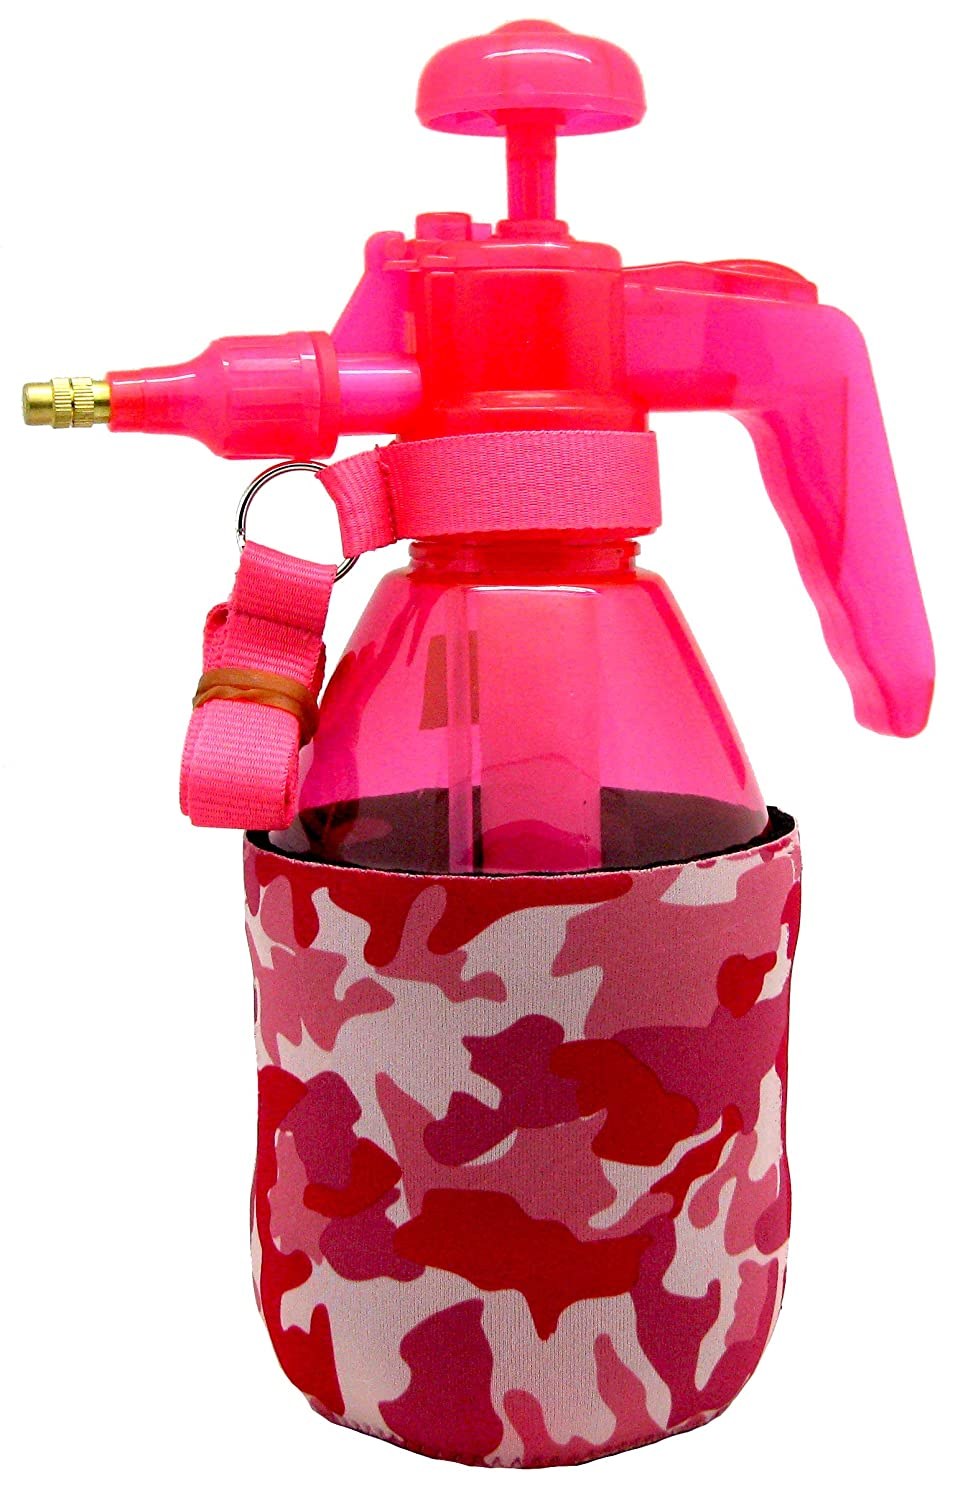 Personal Pump Mister with Pressure Relief Handle and Neoprene Sleeve Pink Camo PB Misters Mister Chill